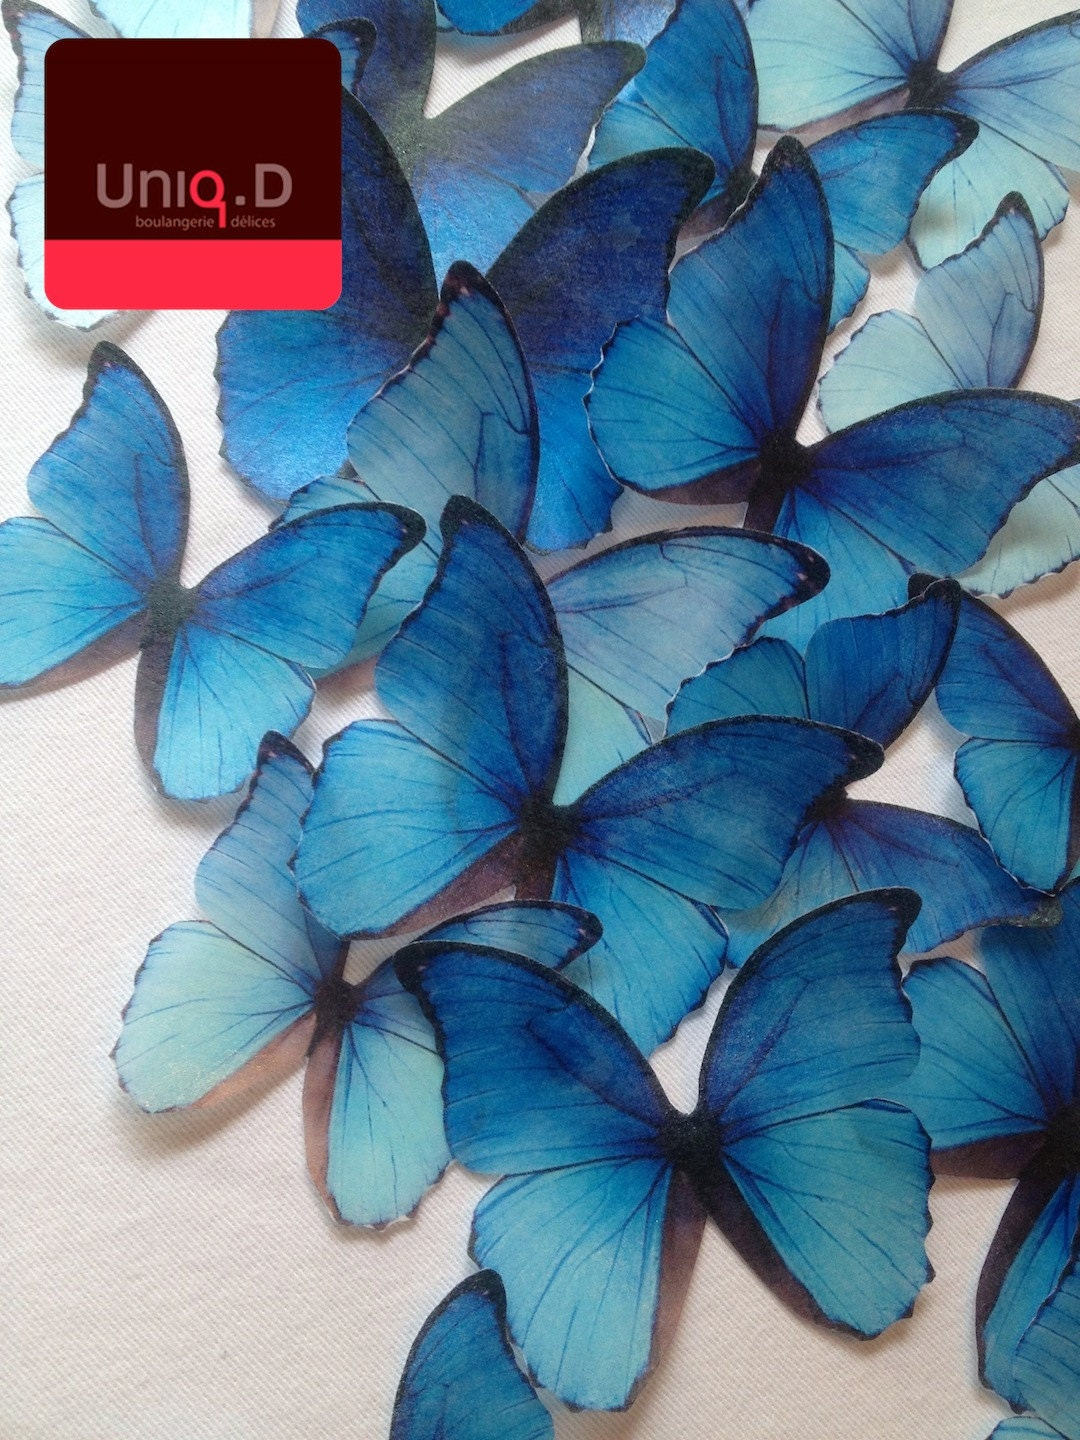 royal blue edible butterflies BUY 35 4 FREE wedding cake